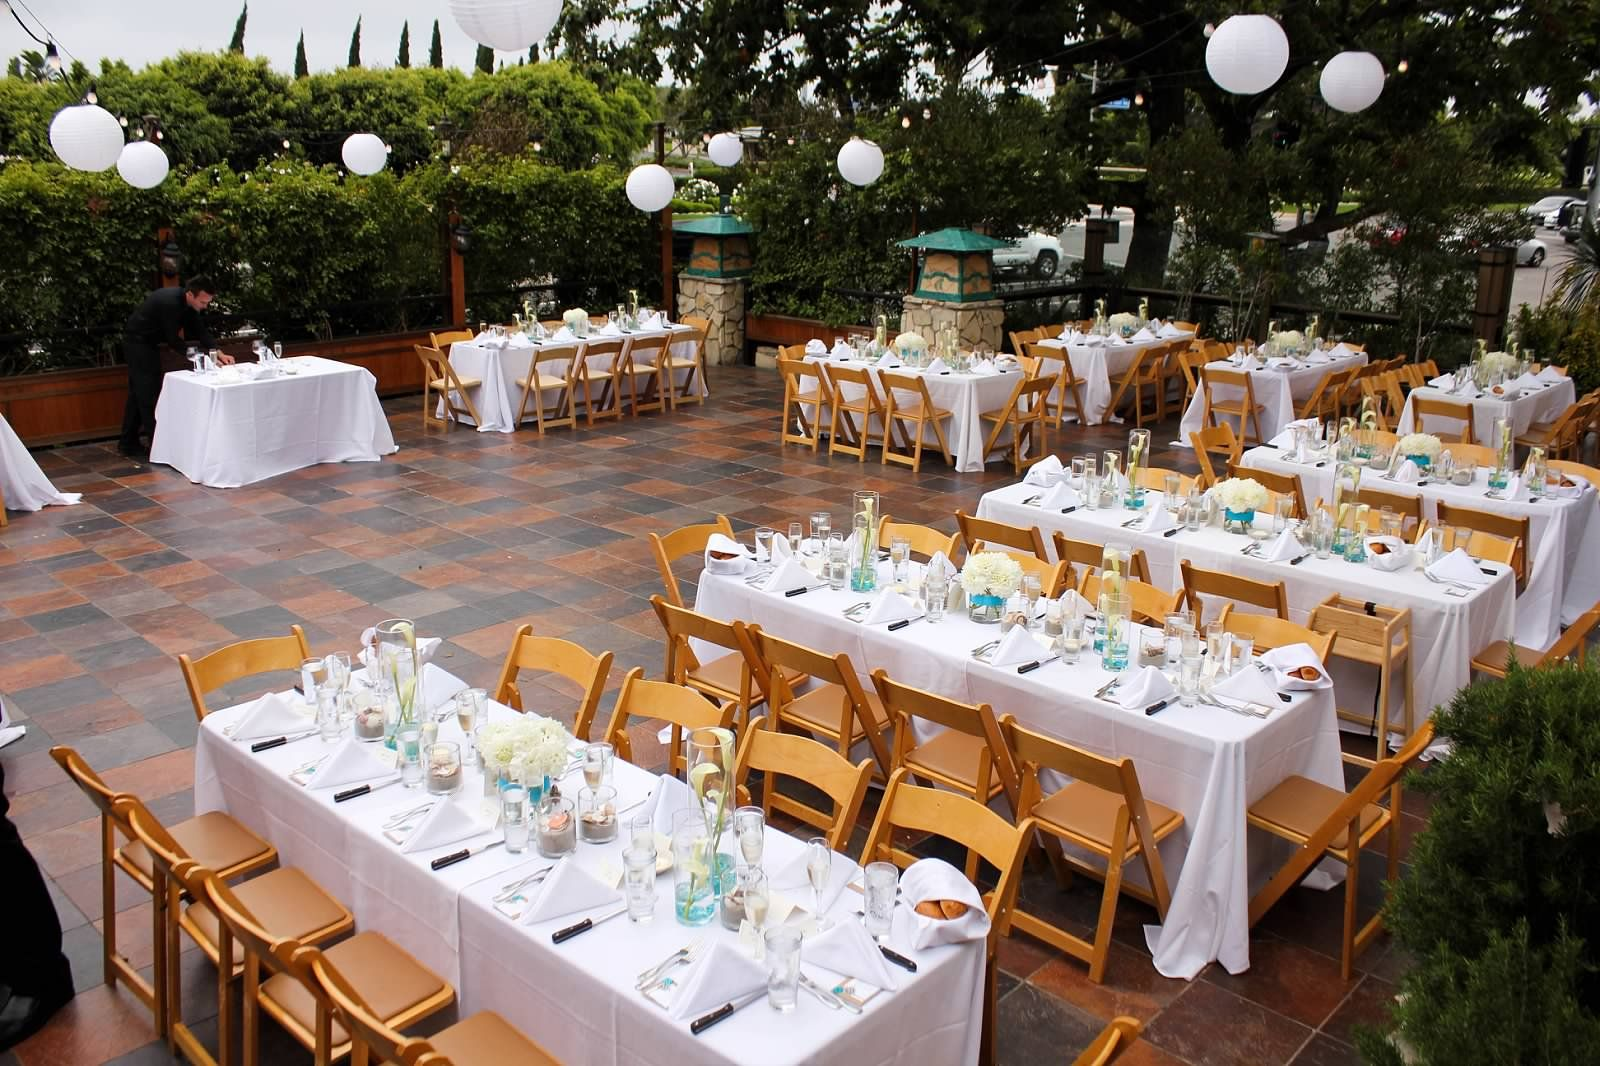 Charming Wedding Seating Chart Helps In Organizing Your Big Day But Could Take Many  Golden Hours Of Your Precious Time.